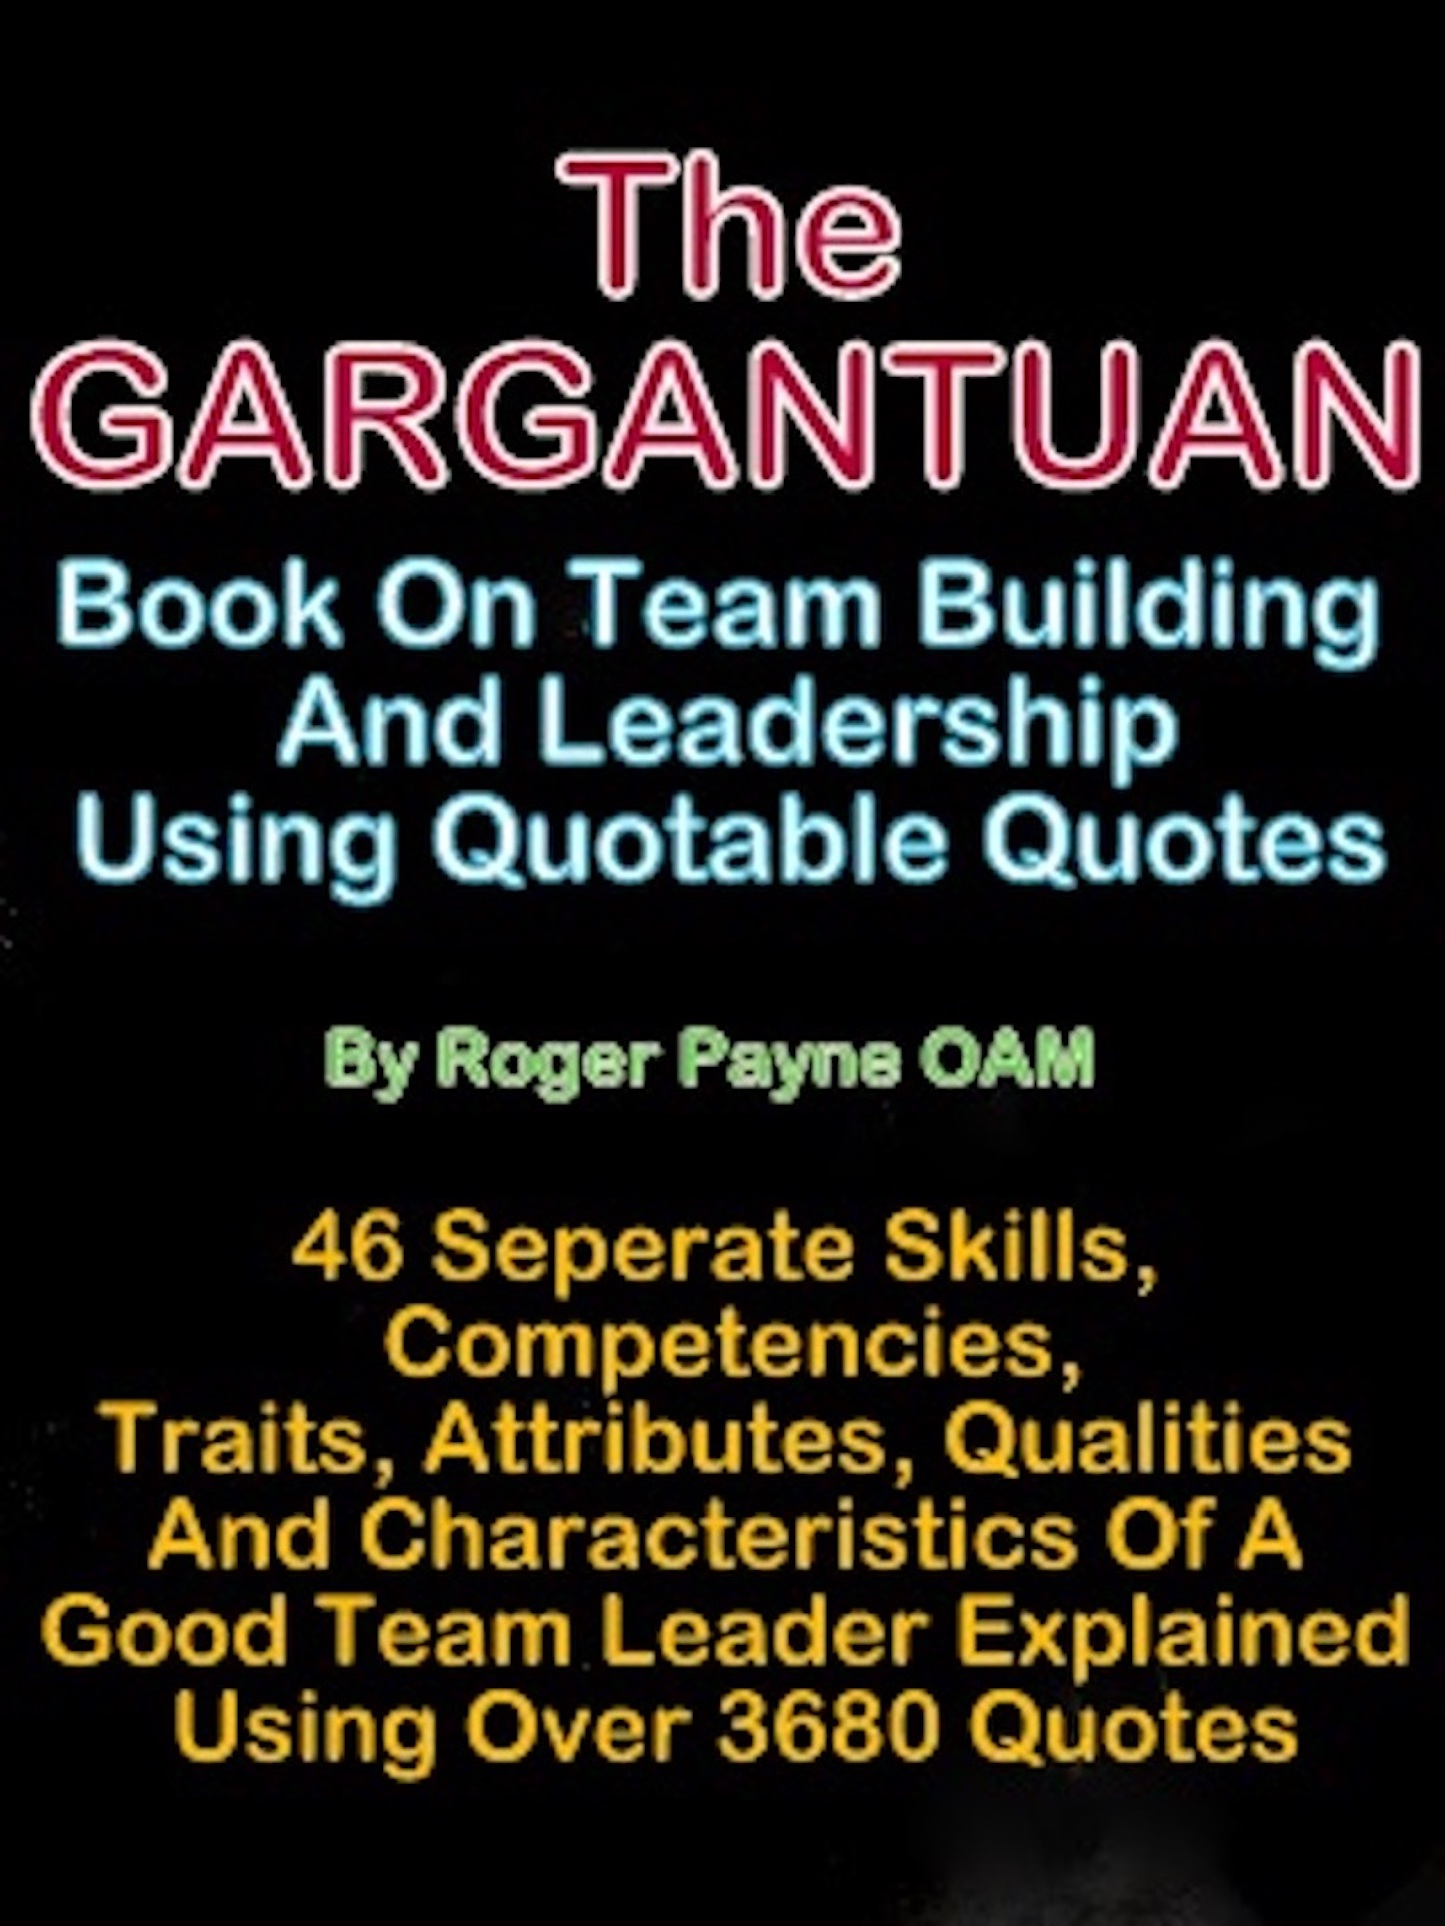 Team Building Quotes Smashwords  The 'gargantuan' Book On Team Building And Leadership